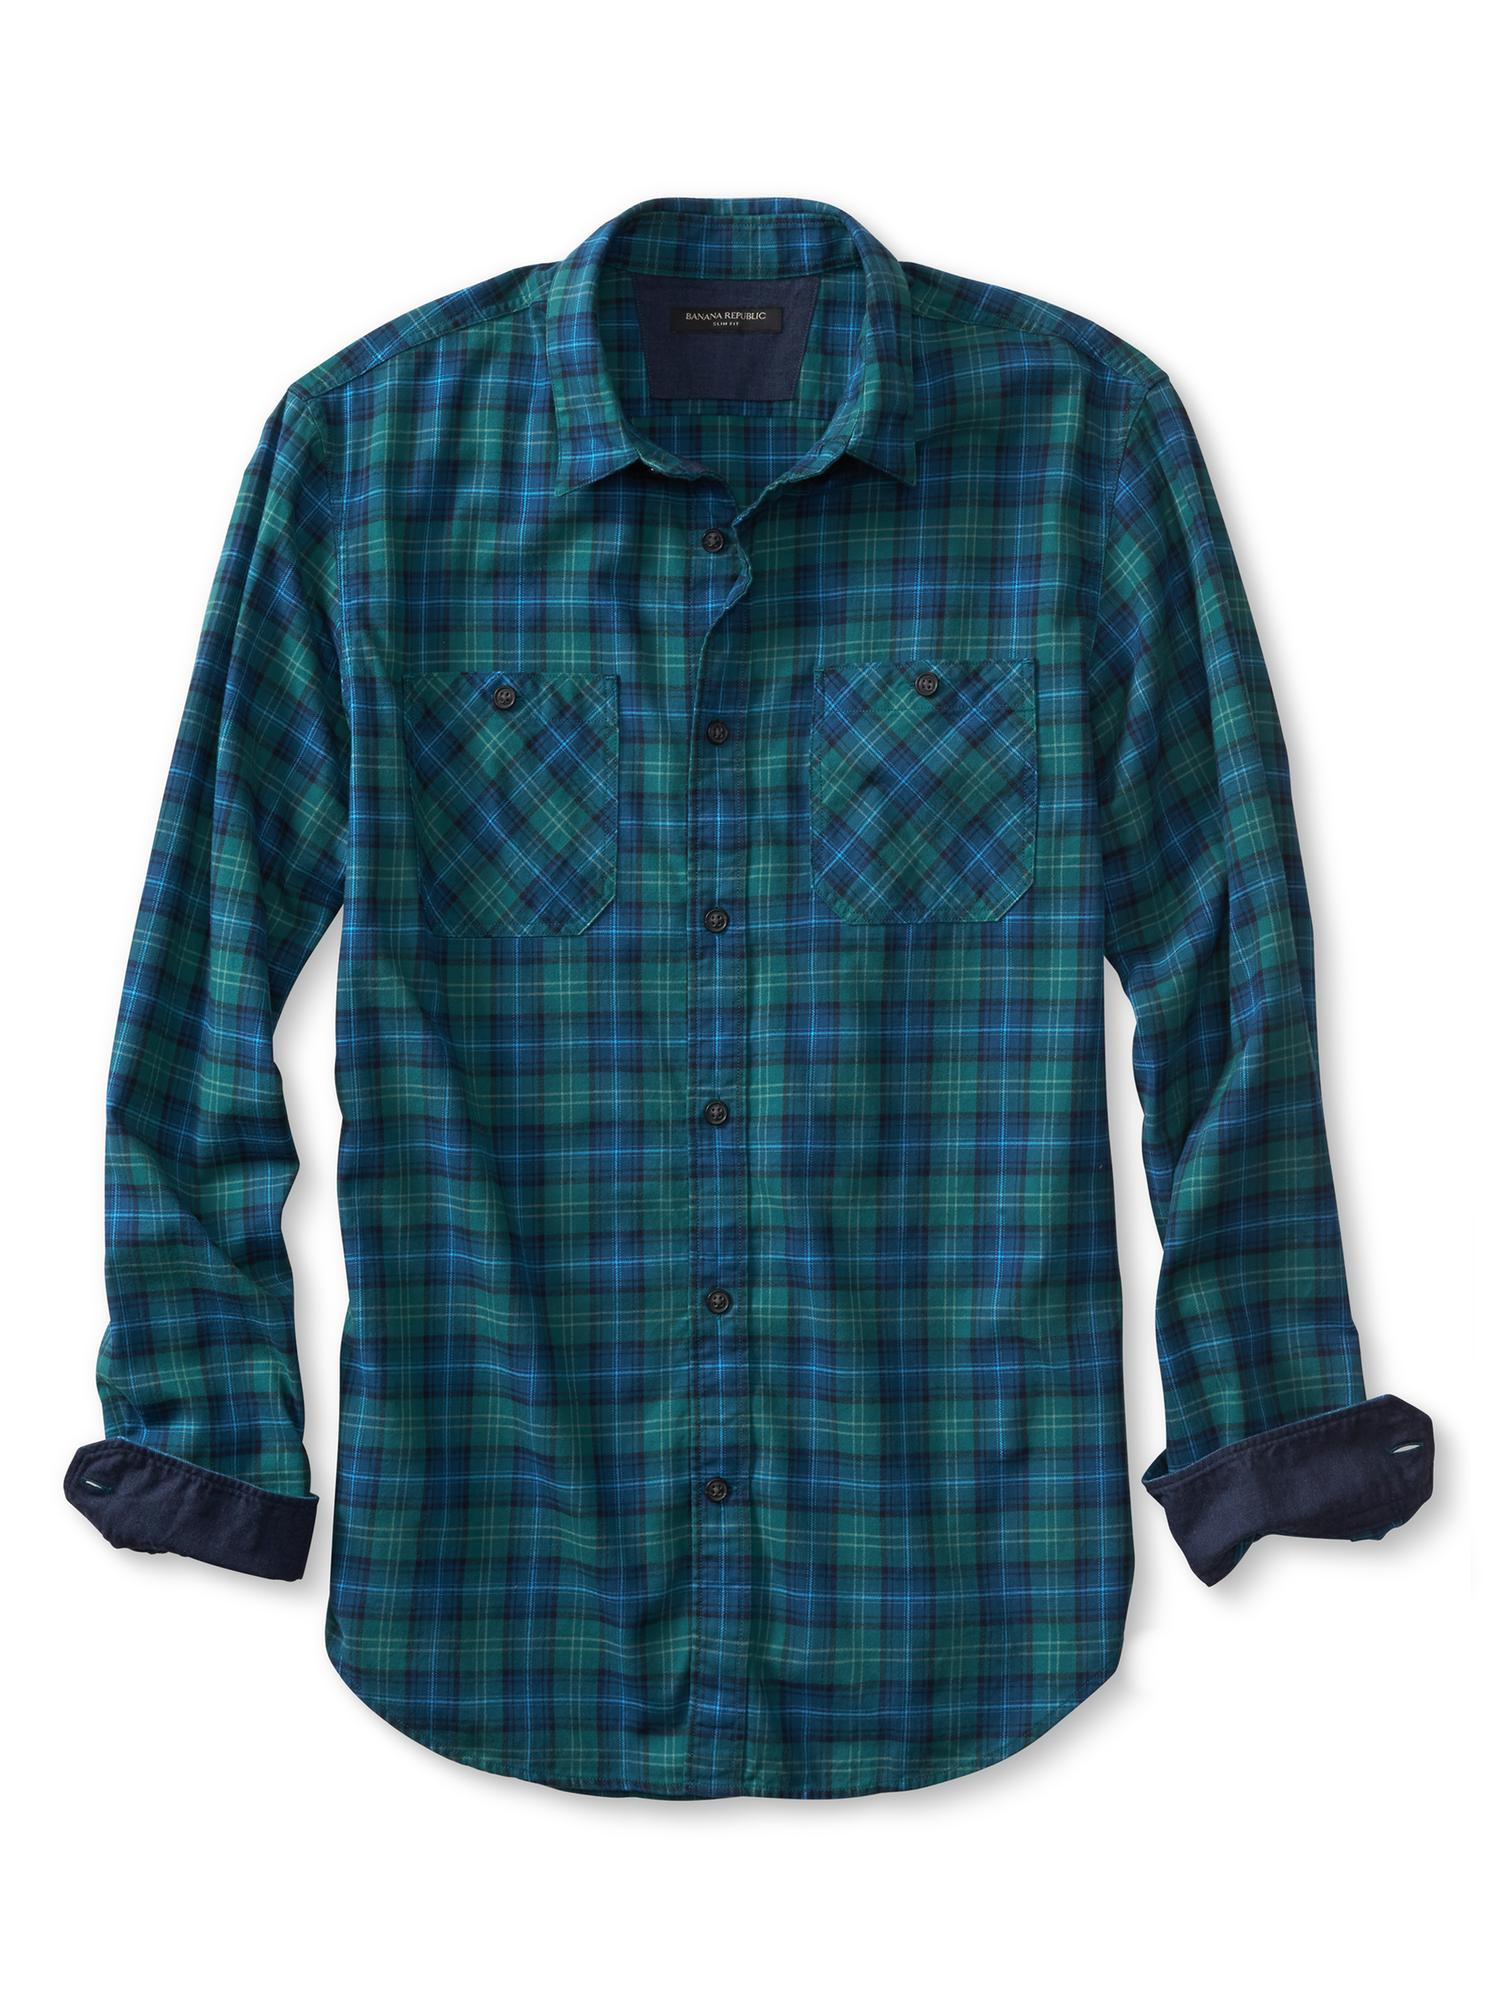 Banana republic slim fit green plaid flannel shirt in for Mens slim fit flannel shirt